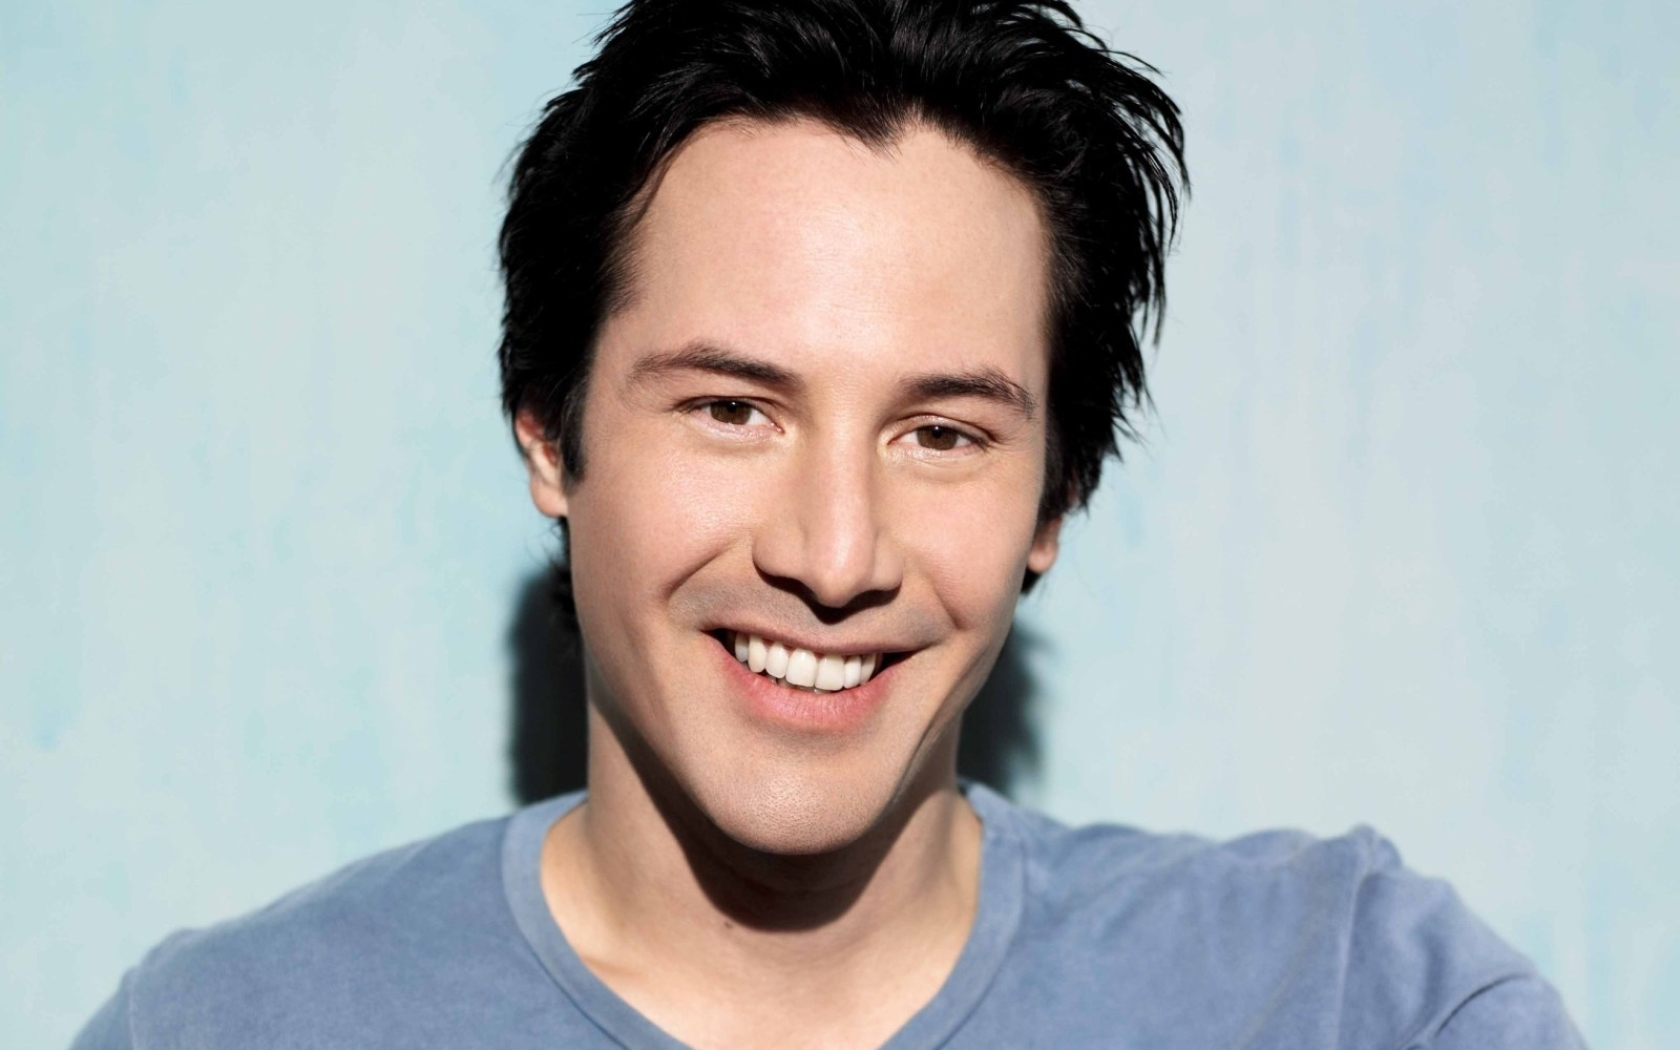 1680x1050 Keanu Reeves Smile Images 1680x1050 Resolution